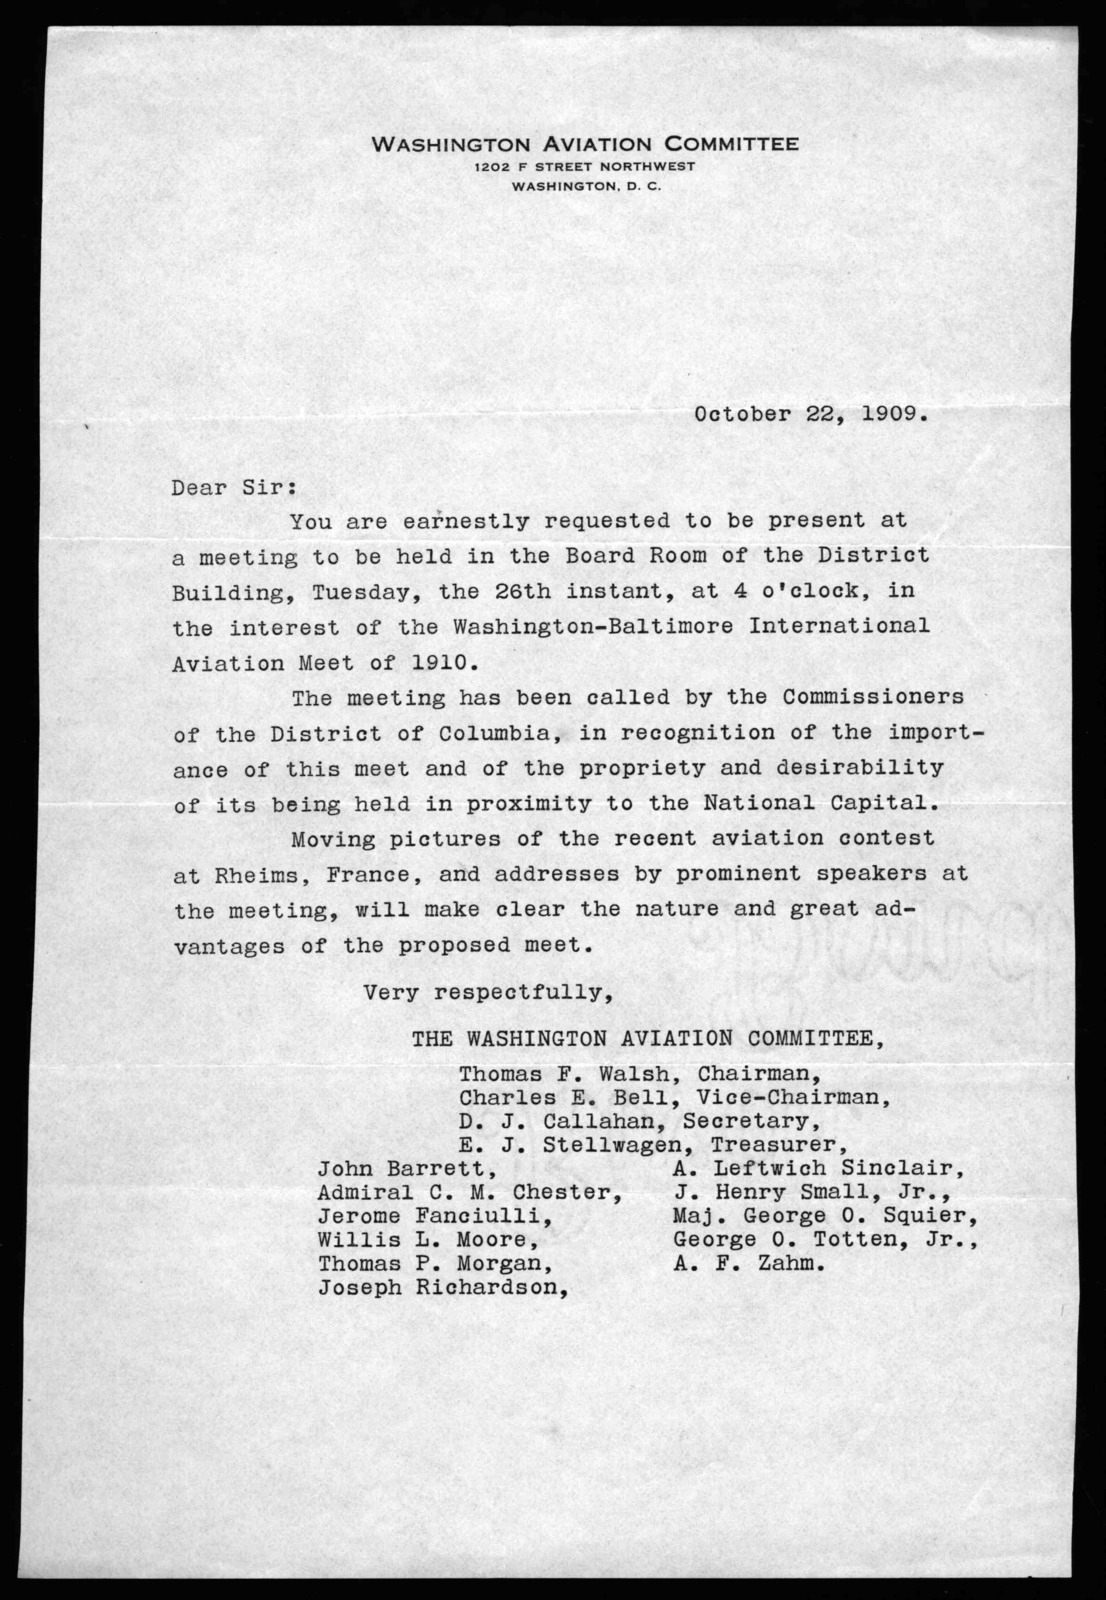 Letter from The Washington Aviation Committee to Alexander Graham Bell, October 22, 1909